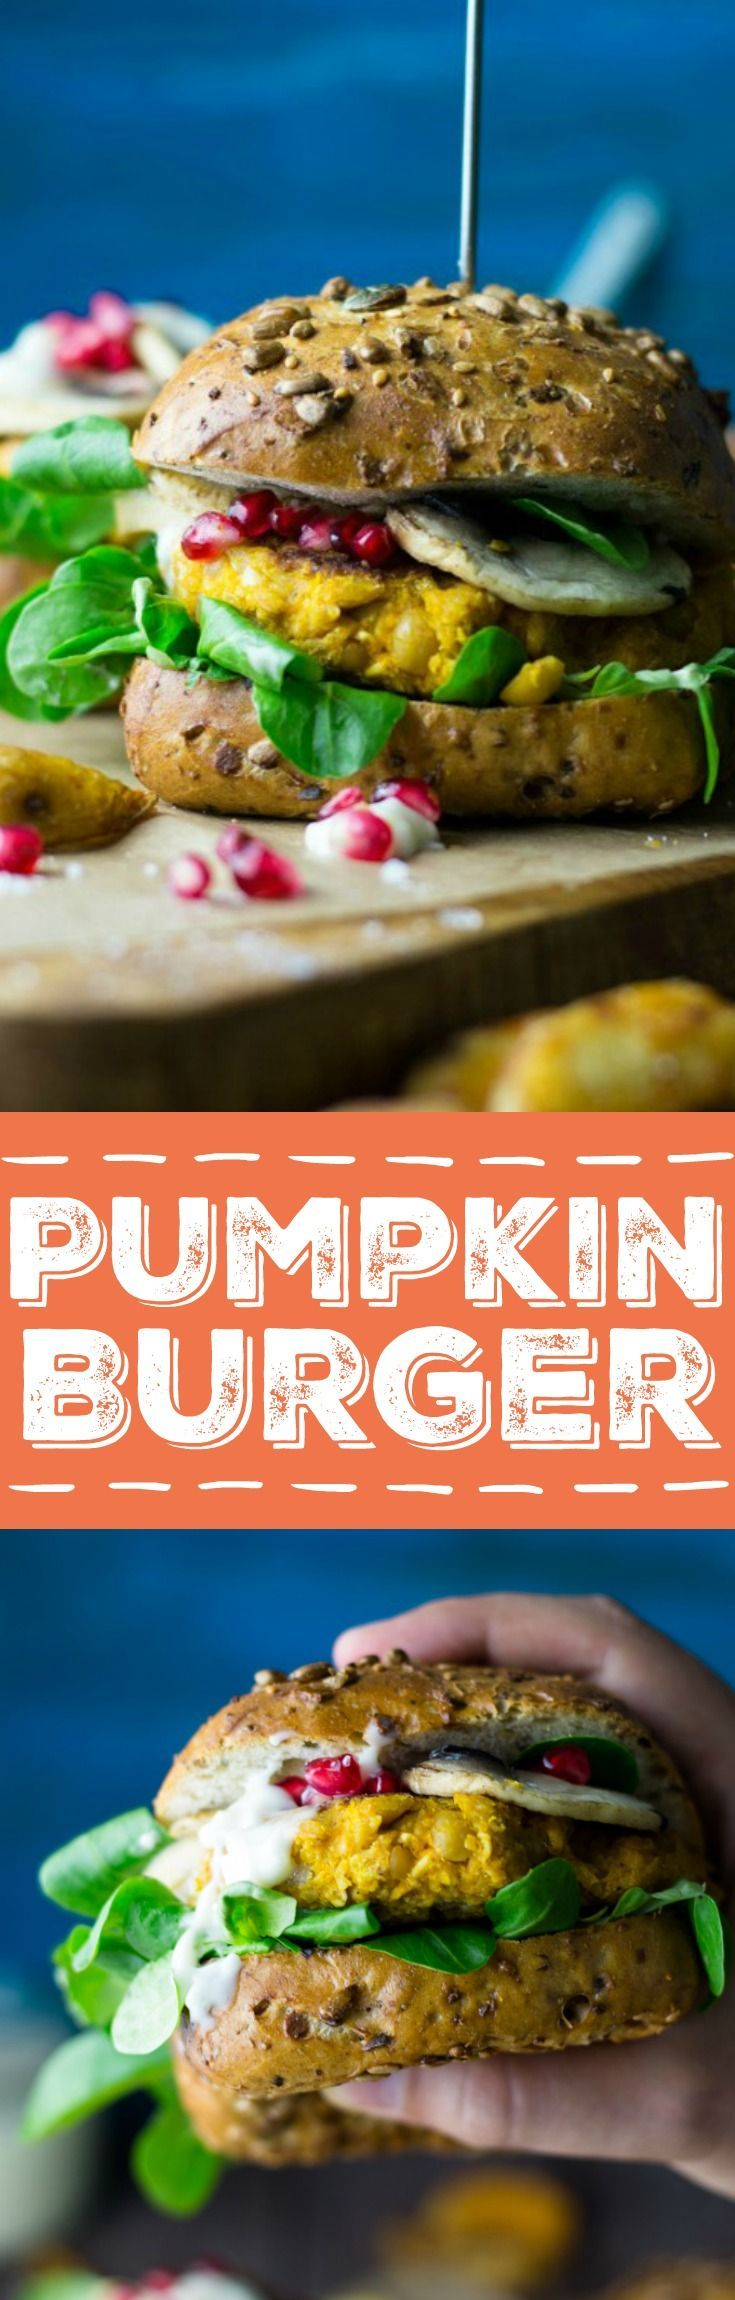 This pumpkin veggie burger with lamb's lettuce, mushrooms, pomegranate, and garlic mayonnaise is just perfect for fall! Super healthy and insanely delicious! You won't miss the meat in this vegan burger!